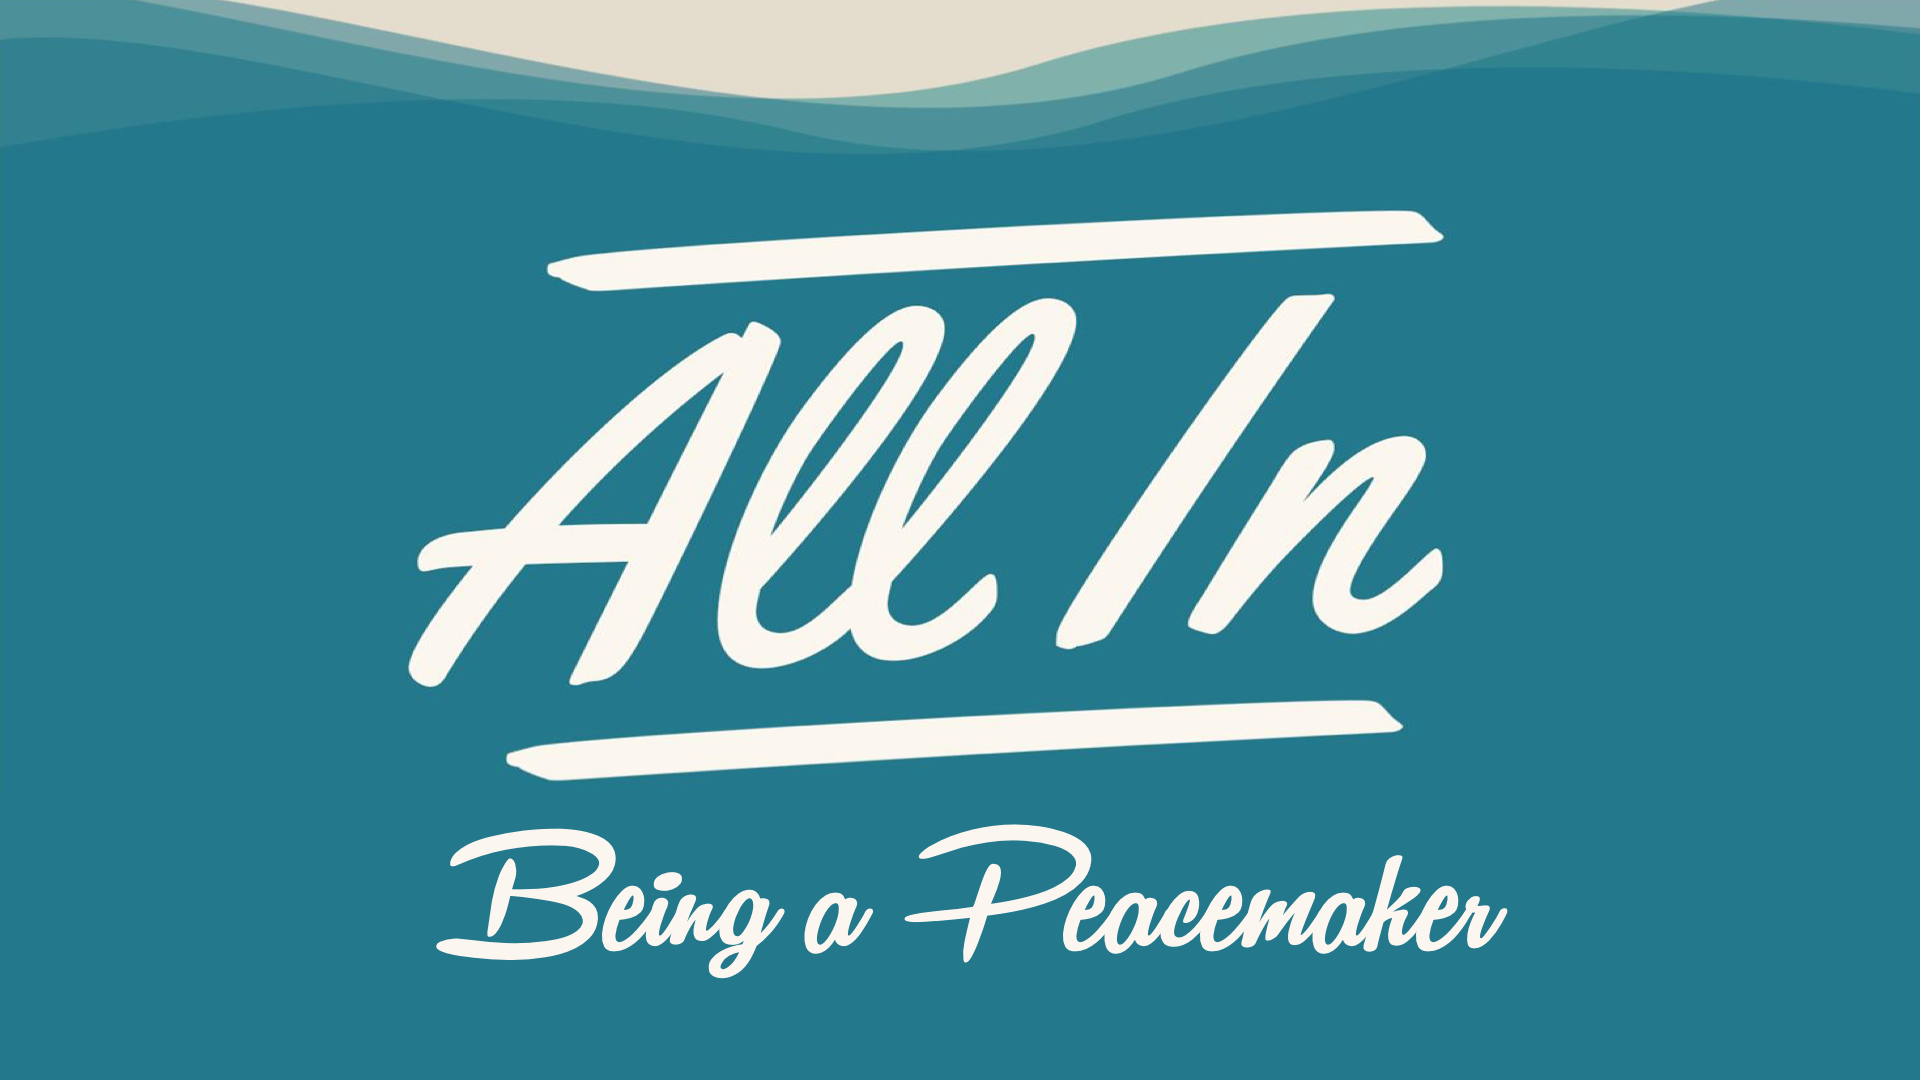 All In: Being a Peacemaker